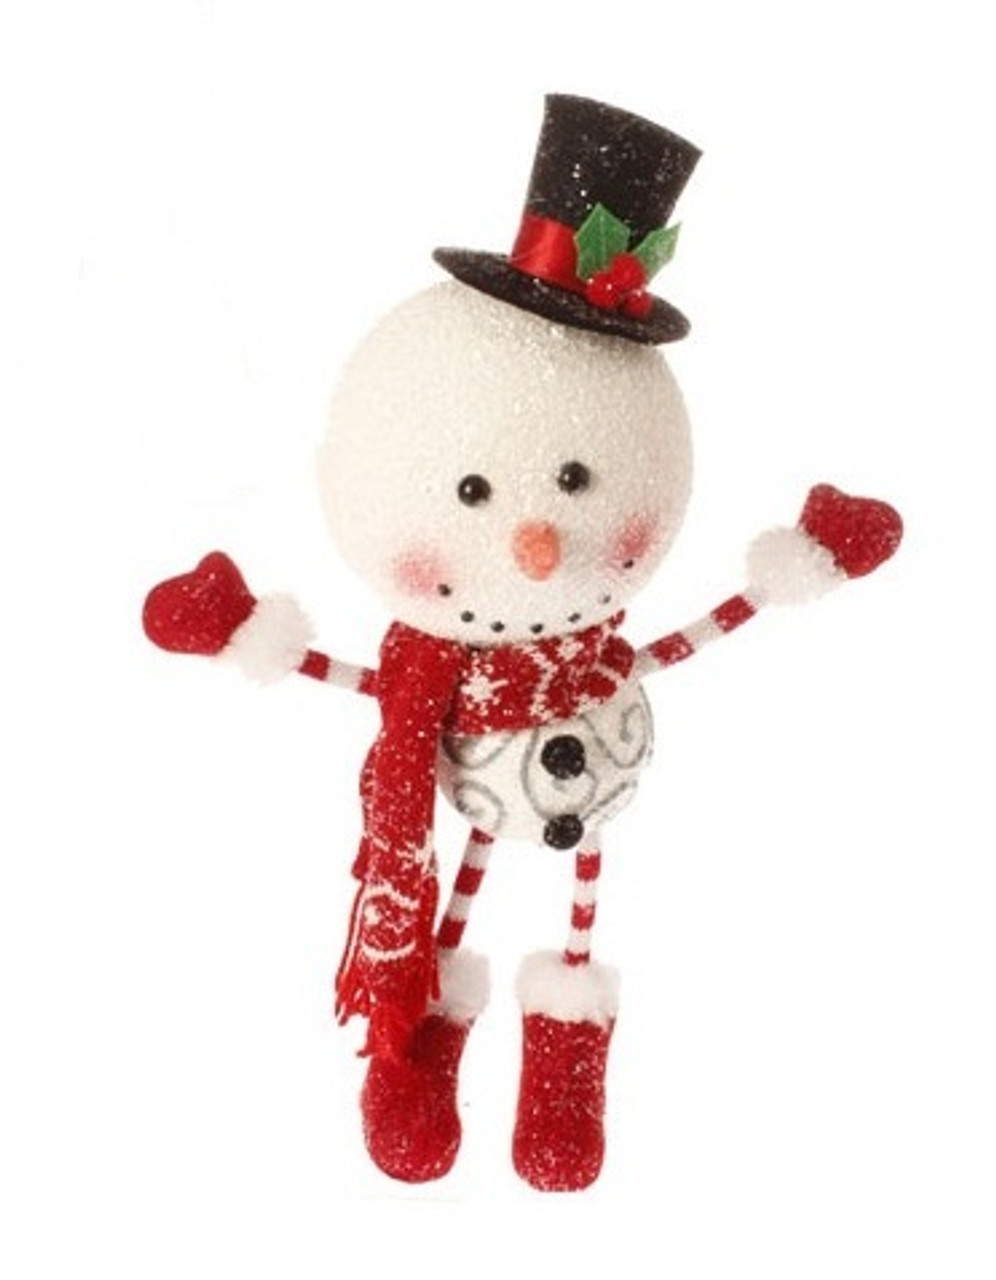 15 Alpine Chic Oversized Snowman With Santa Hat Christmas Ornament Christmas Central